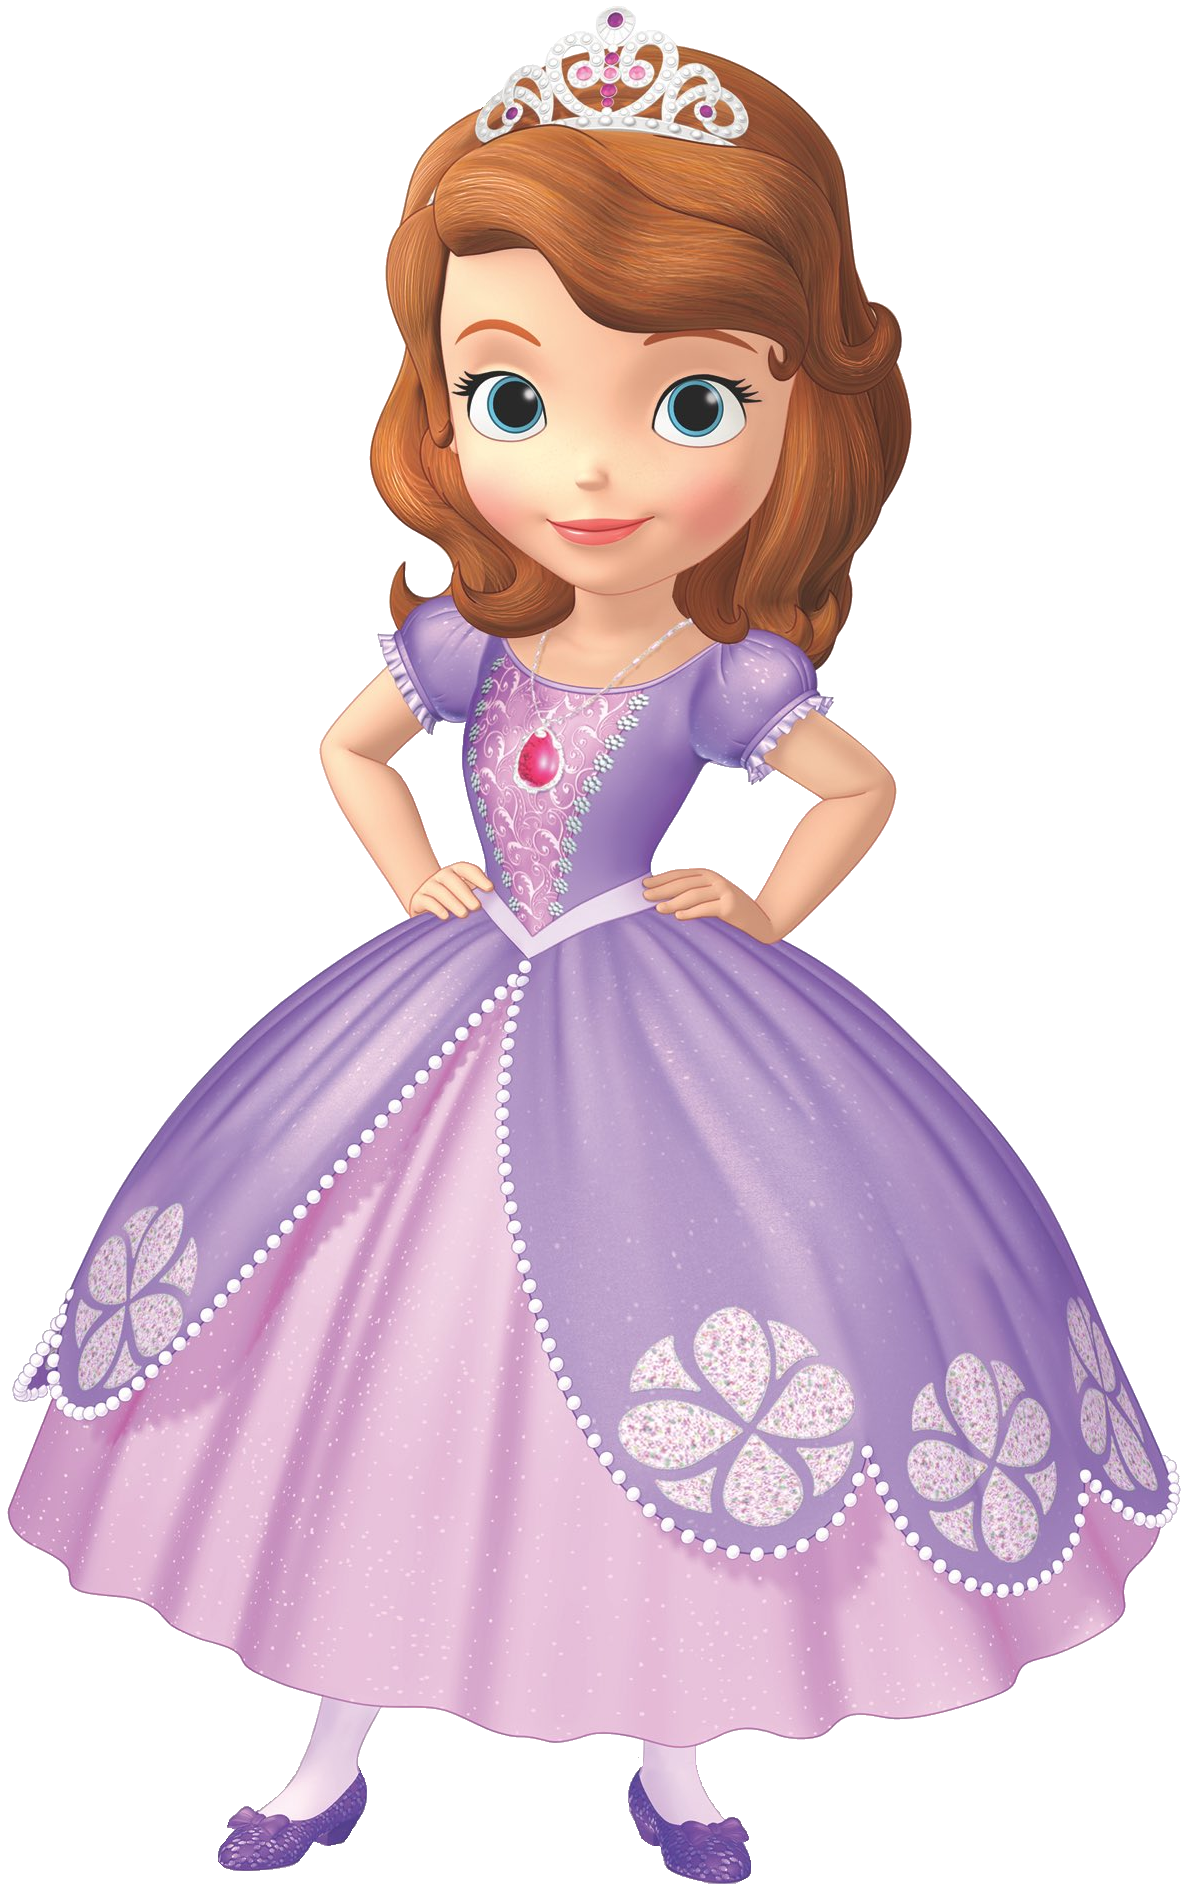 Princess sofia sofia the first wiki fandom powered by - Image princesse sofia ...